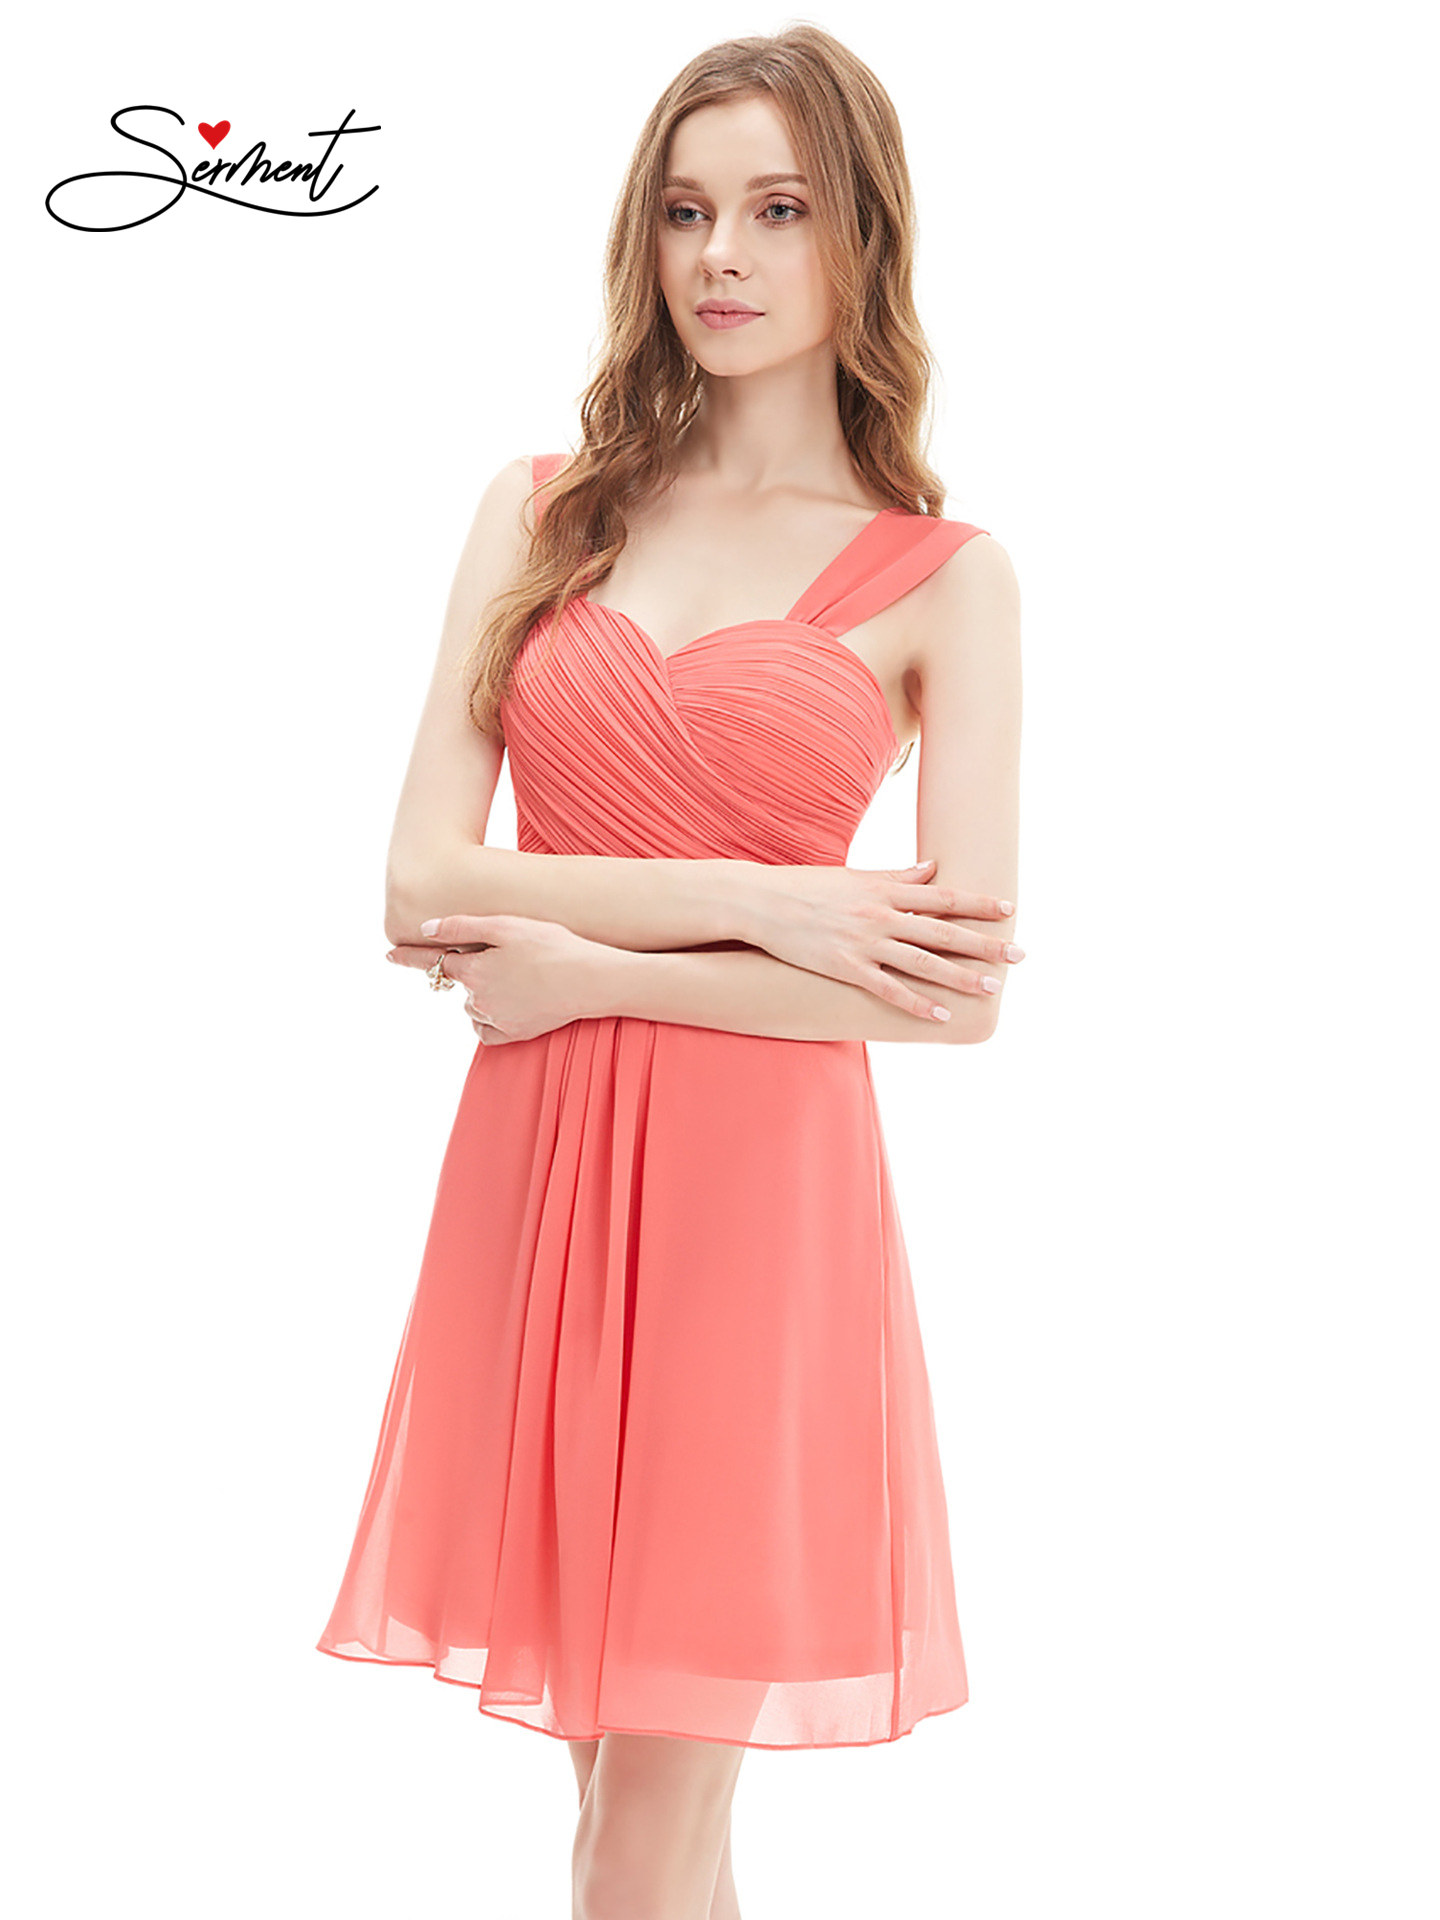 OLLYMURS New Elegant Woman Evening Gown Sexy Sleeveless Chiffon Short Evening Dress Suitable For Formal Parties